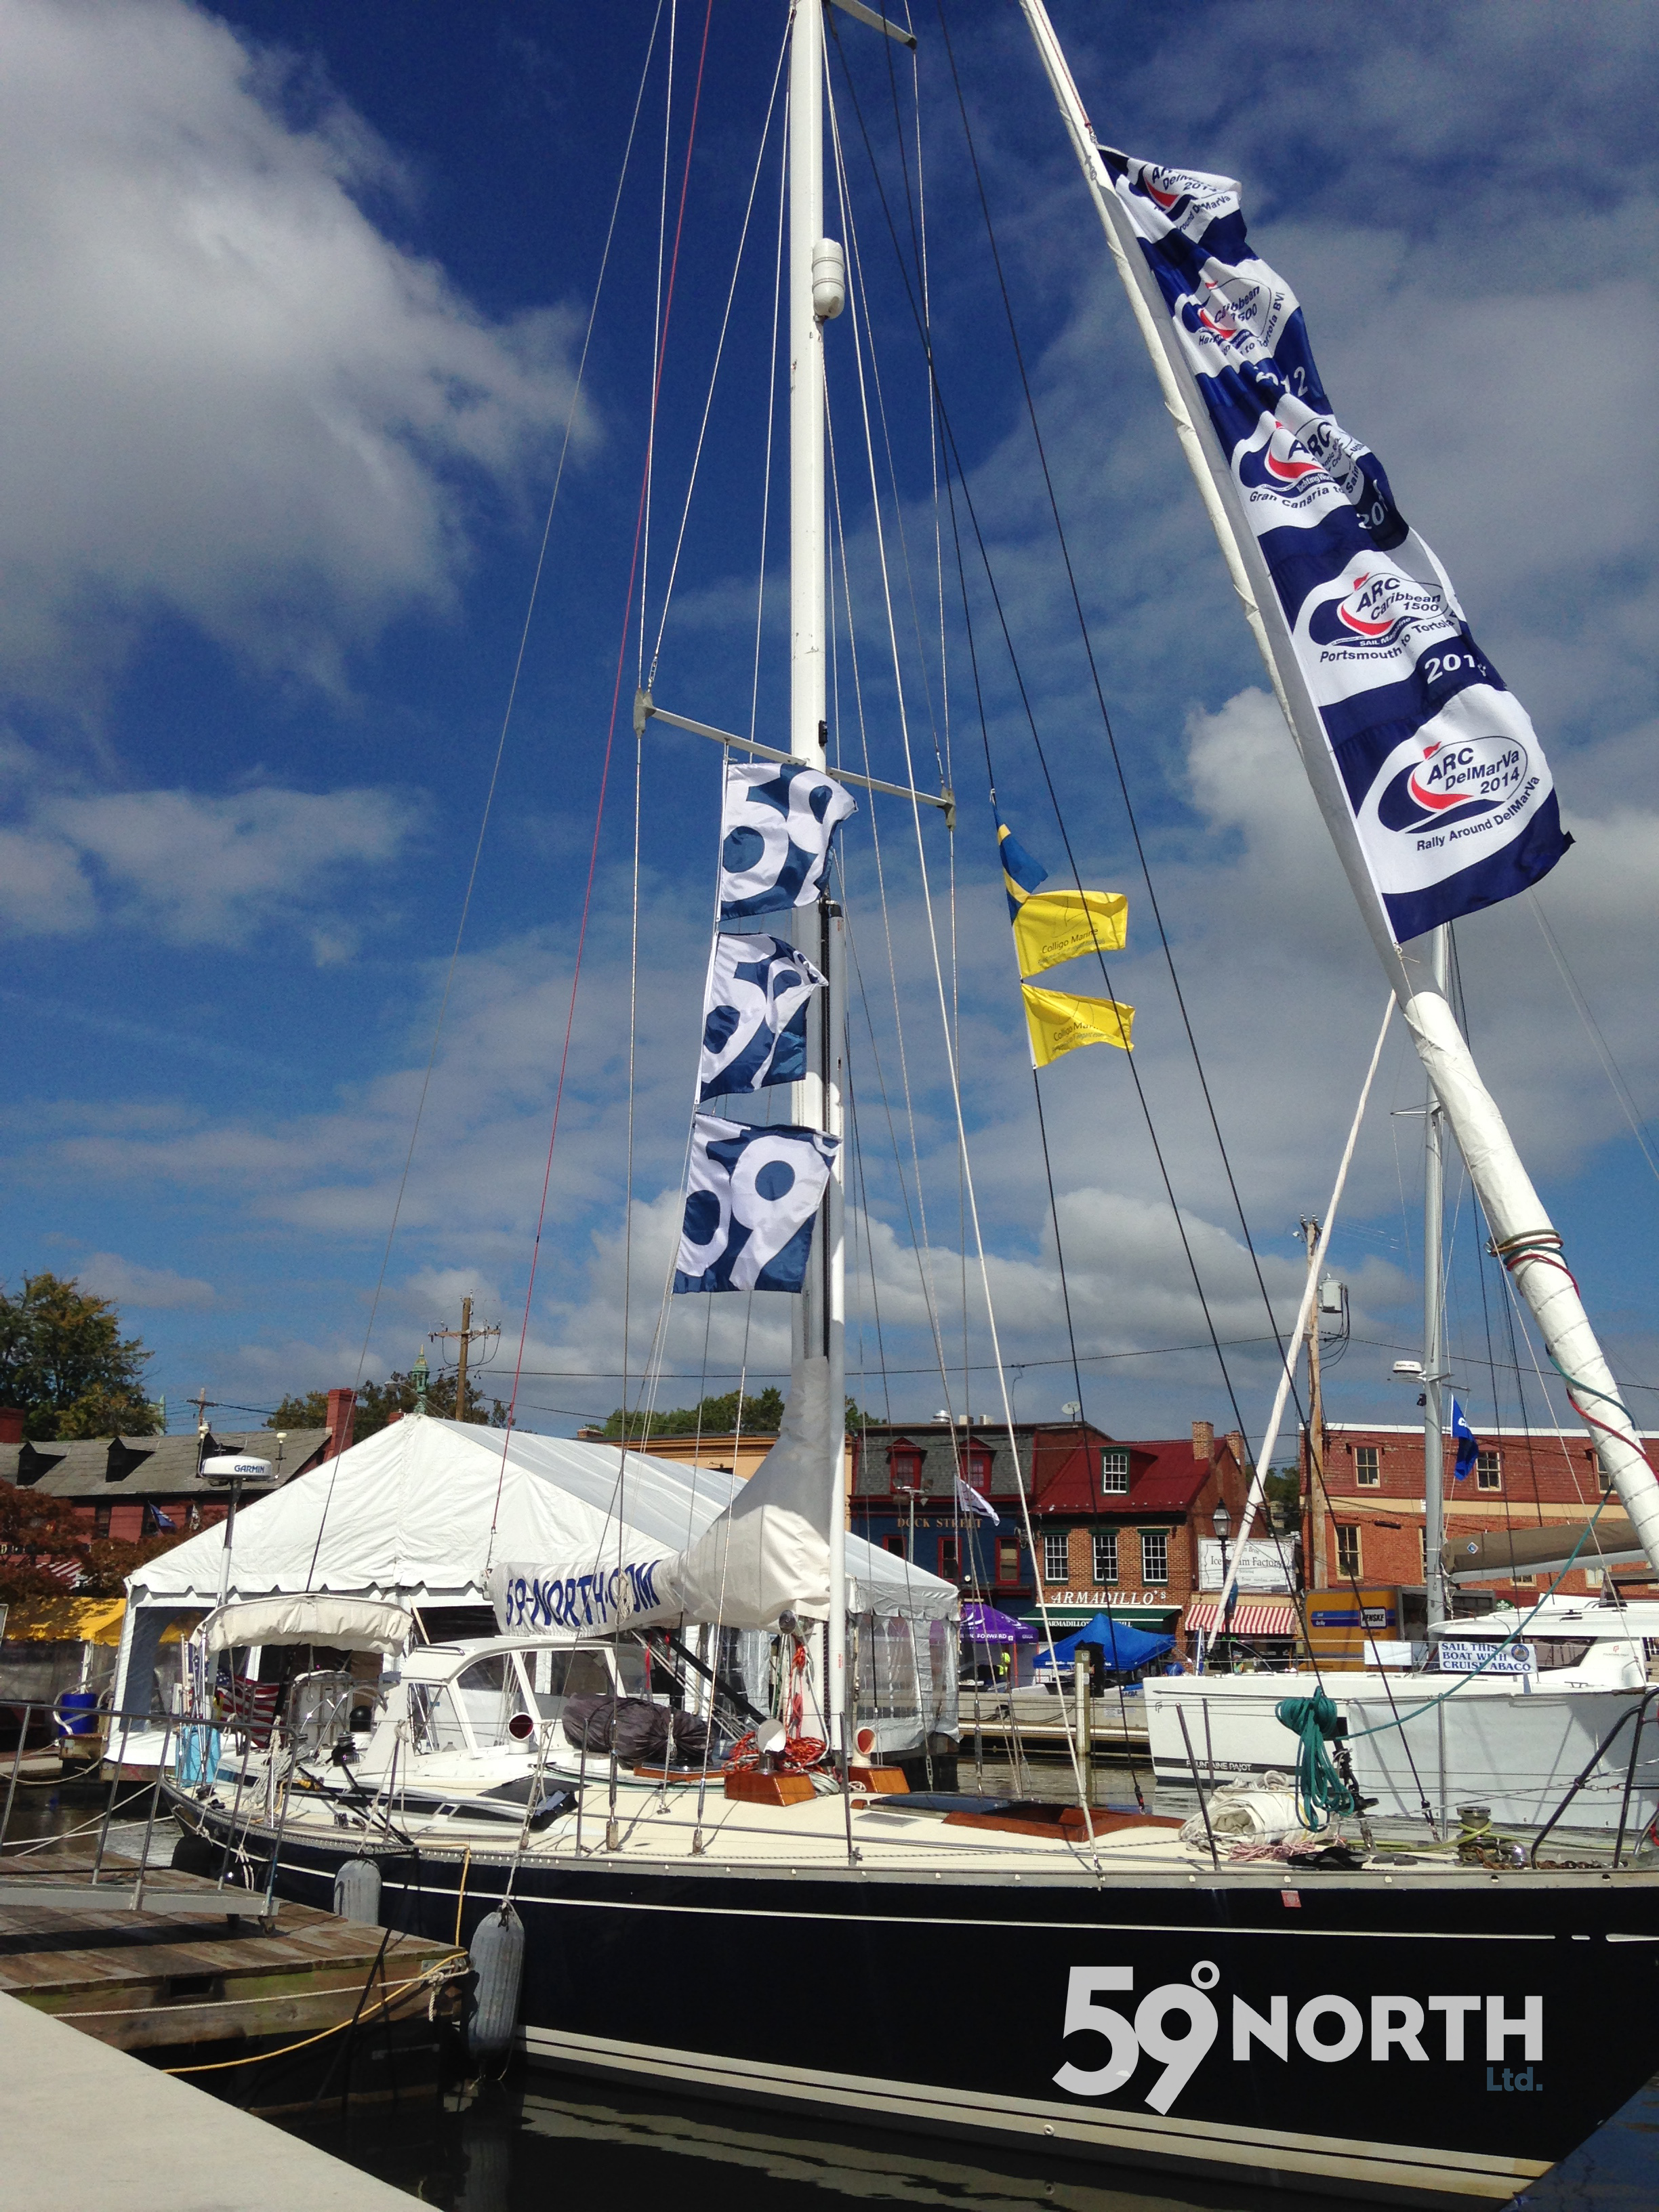 Isbjorn in the Annapolis Boat Show, such a great platform during the show to meet new and old crew and friends! Oct 2016